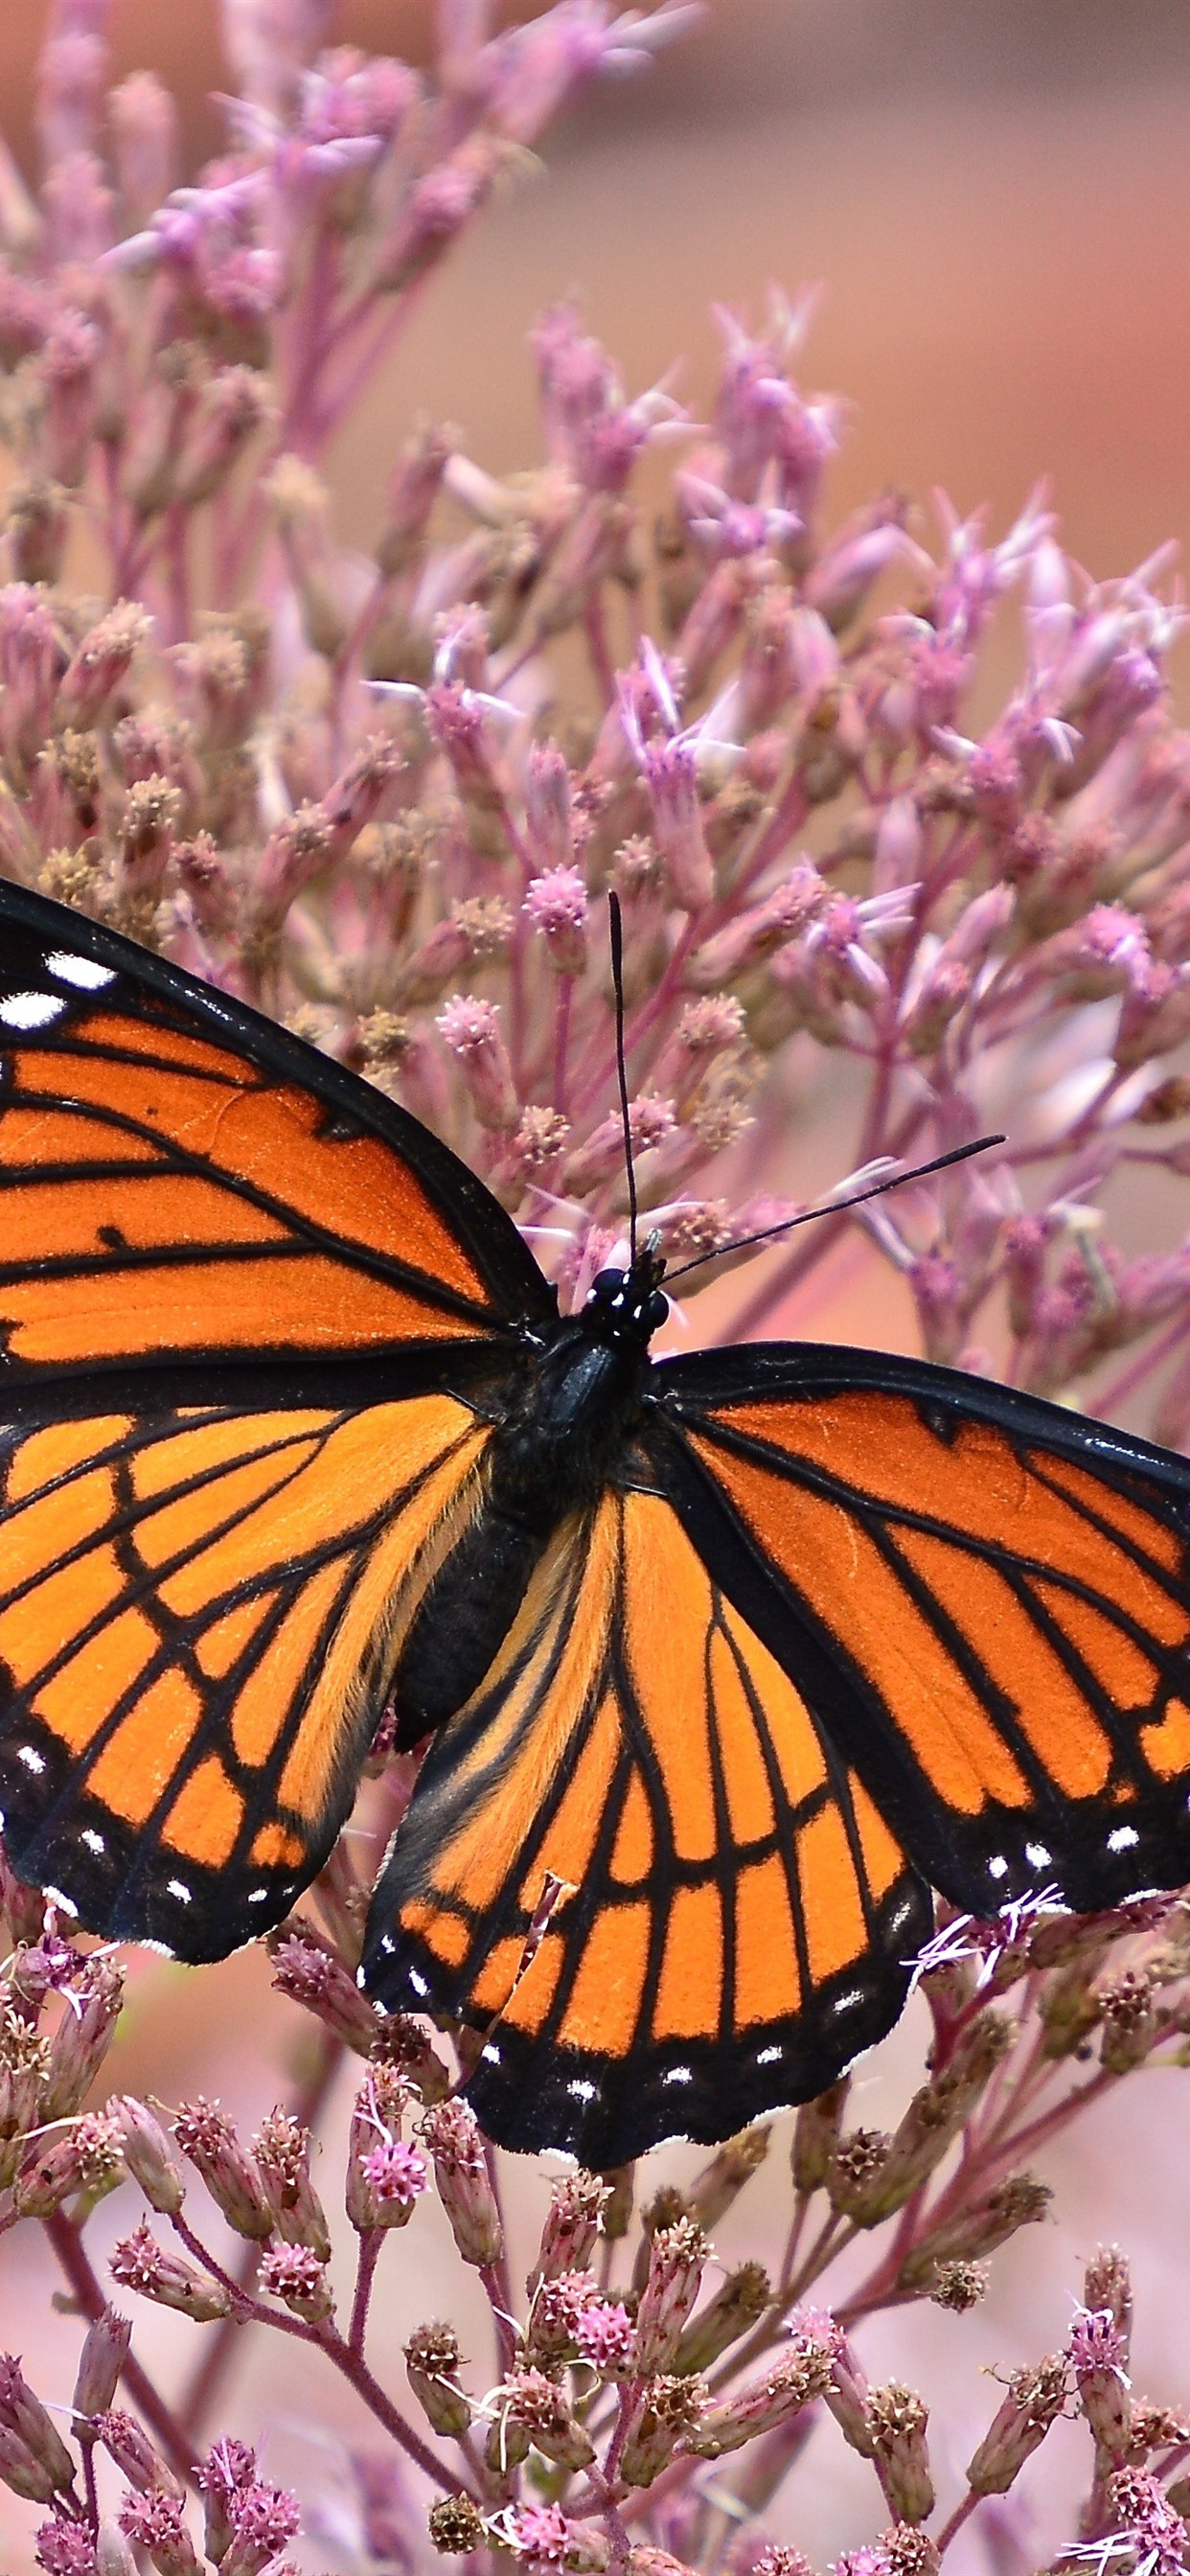 Butterfly Wings Pink Little Flowers Insect 1242x2688 Iphone 11 Pro Xs Max Wallpaper Background Picture Image